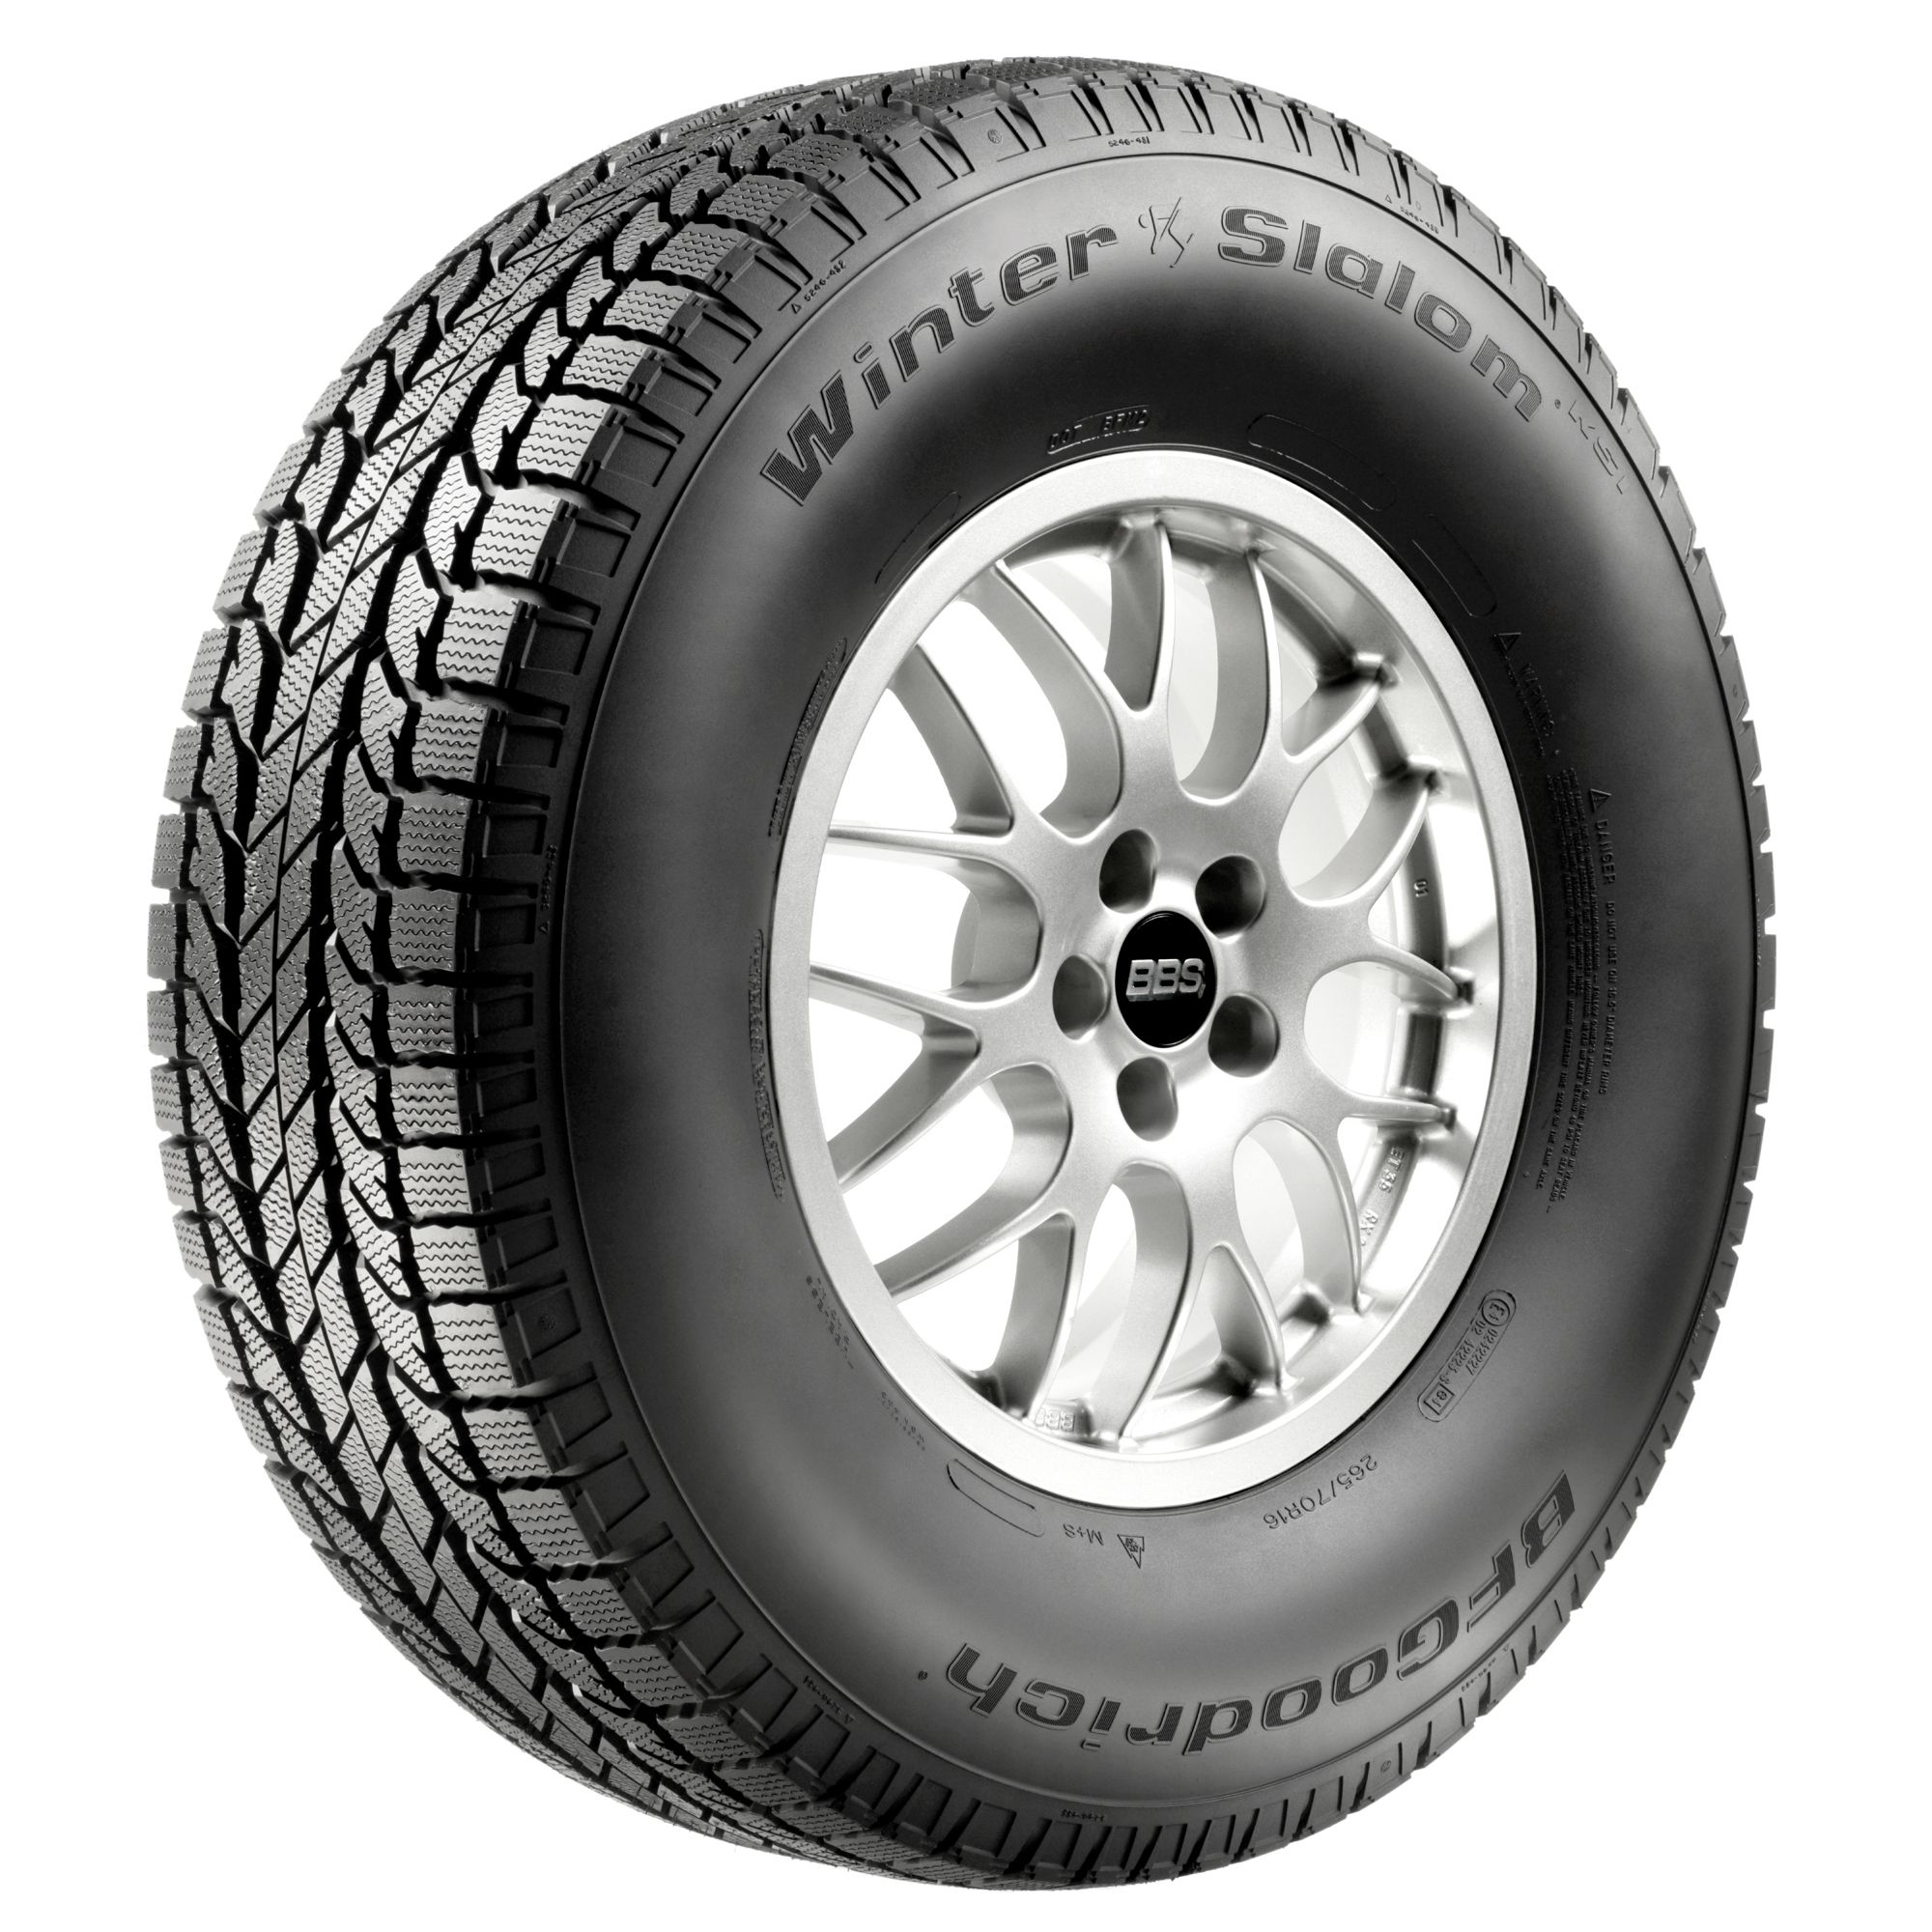 BFGoodrich Winter Slalom KSI - 265/70R17 115S BW - Winter Tire 265-70-17